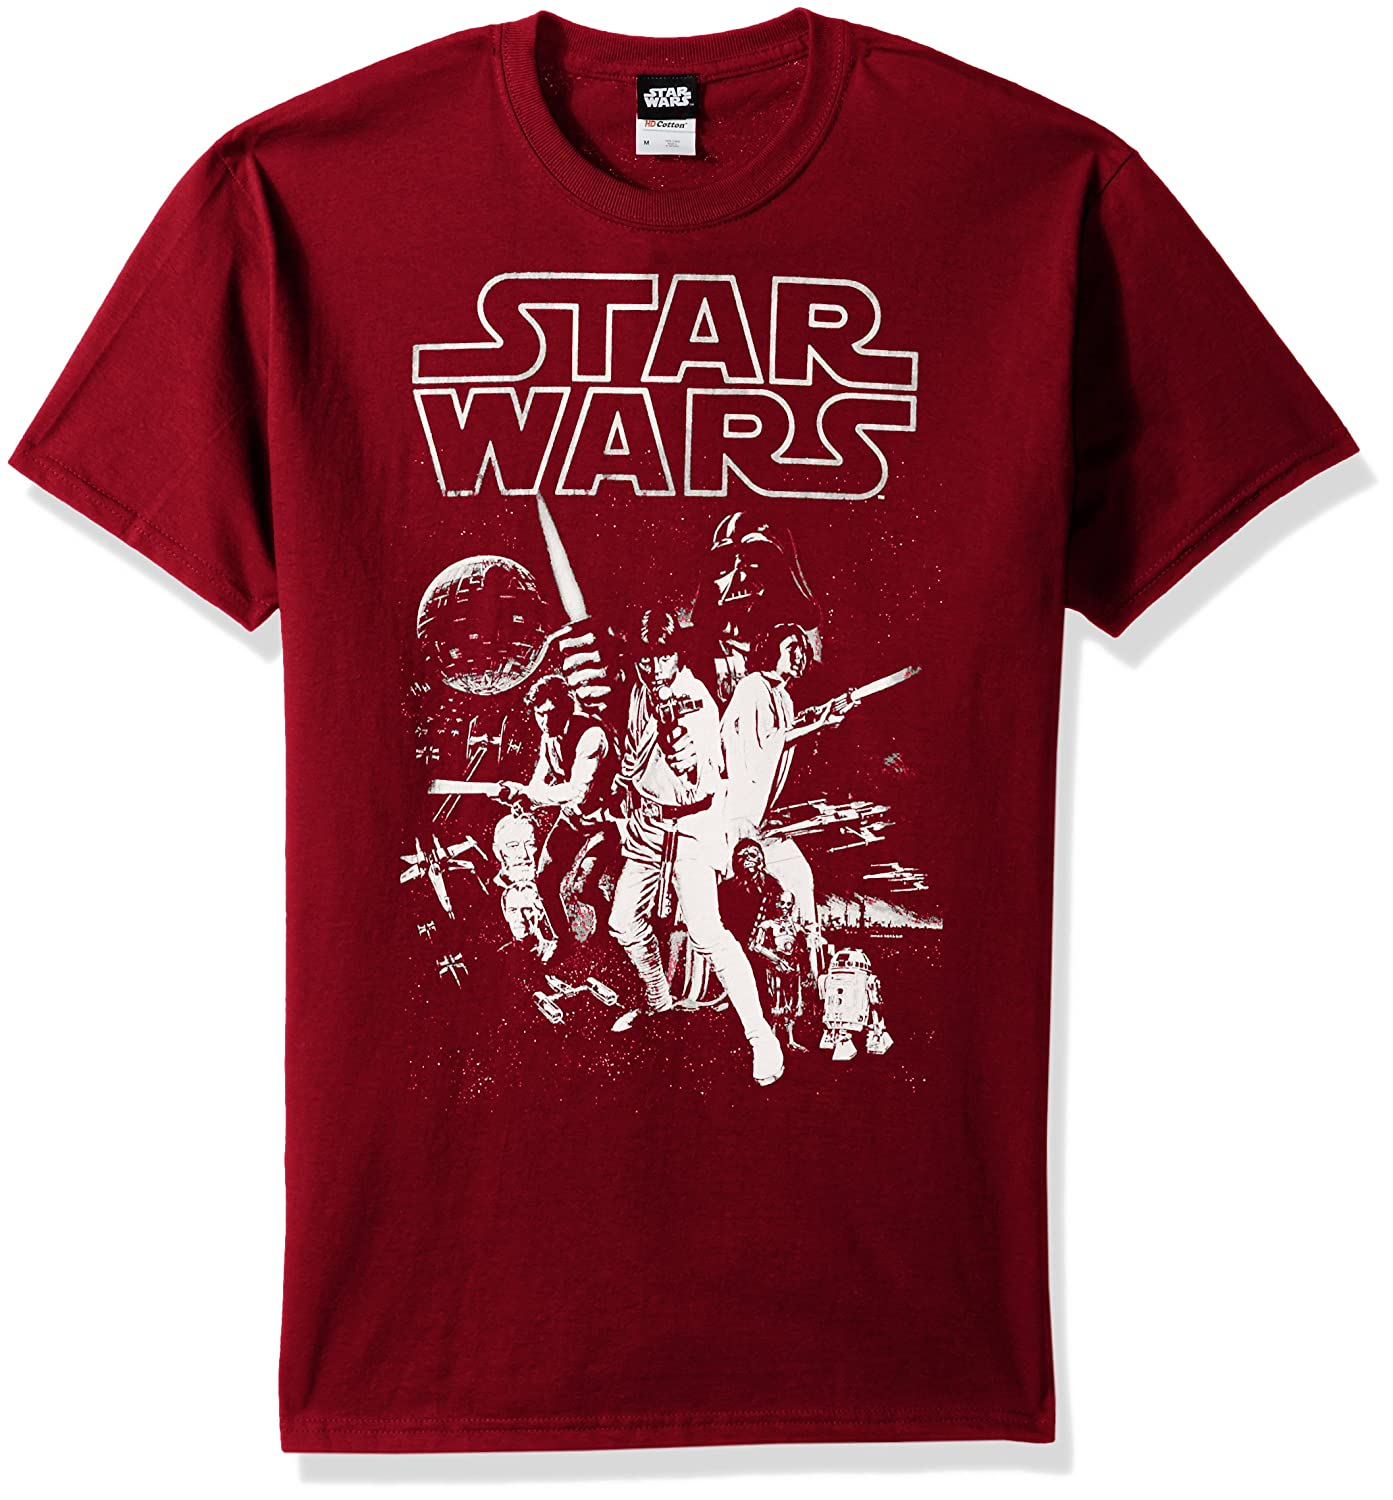 STAR WARS Mens Official Poster Premium Ringer Graphic Tee